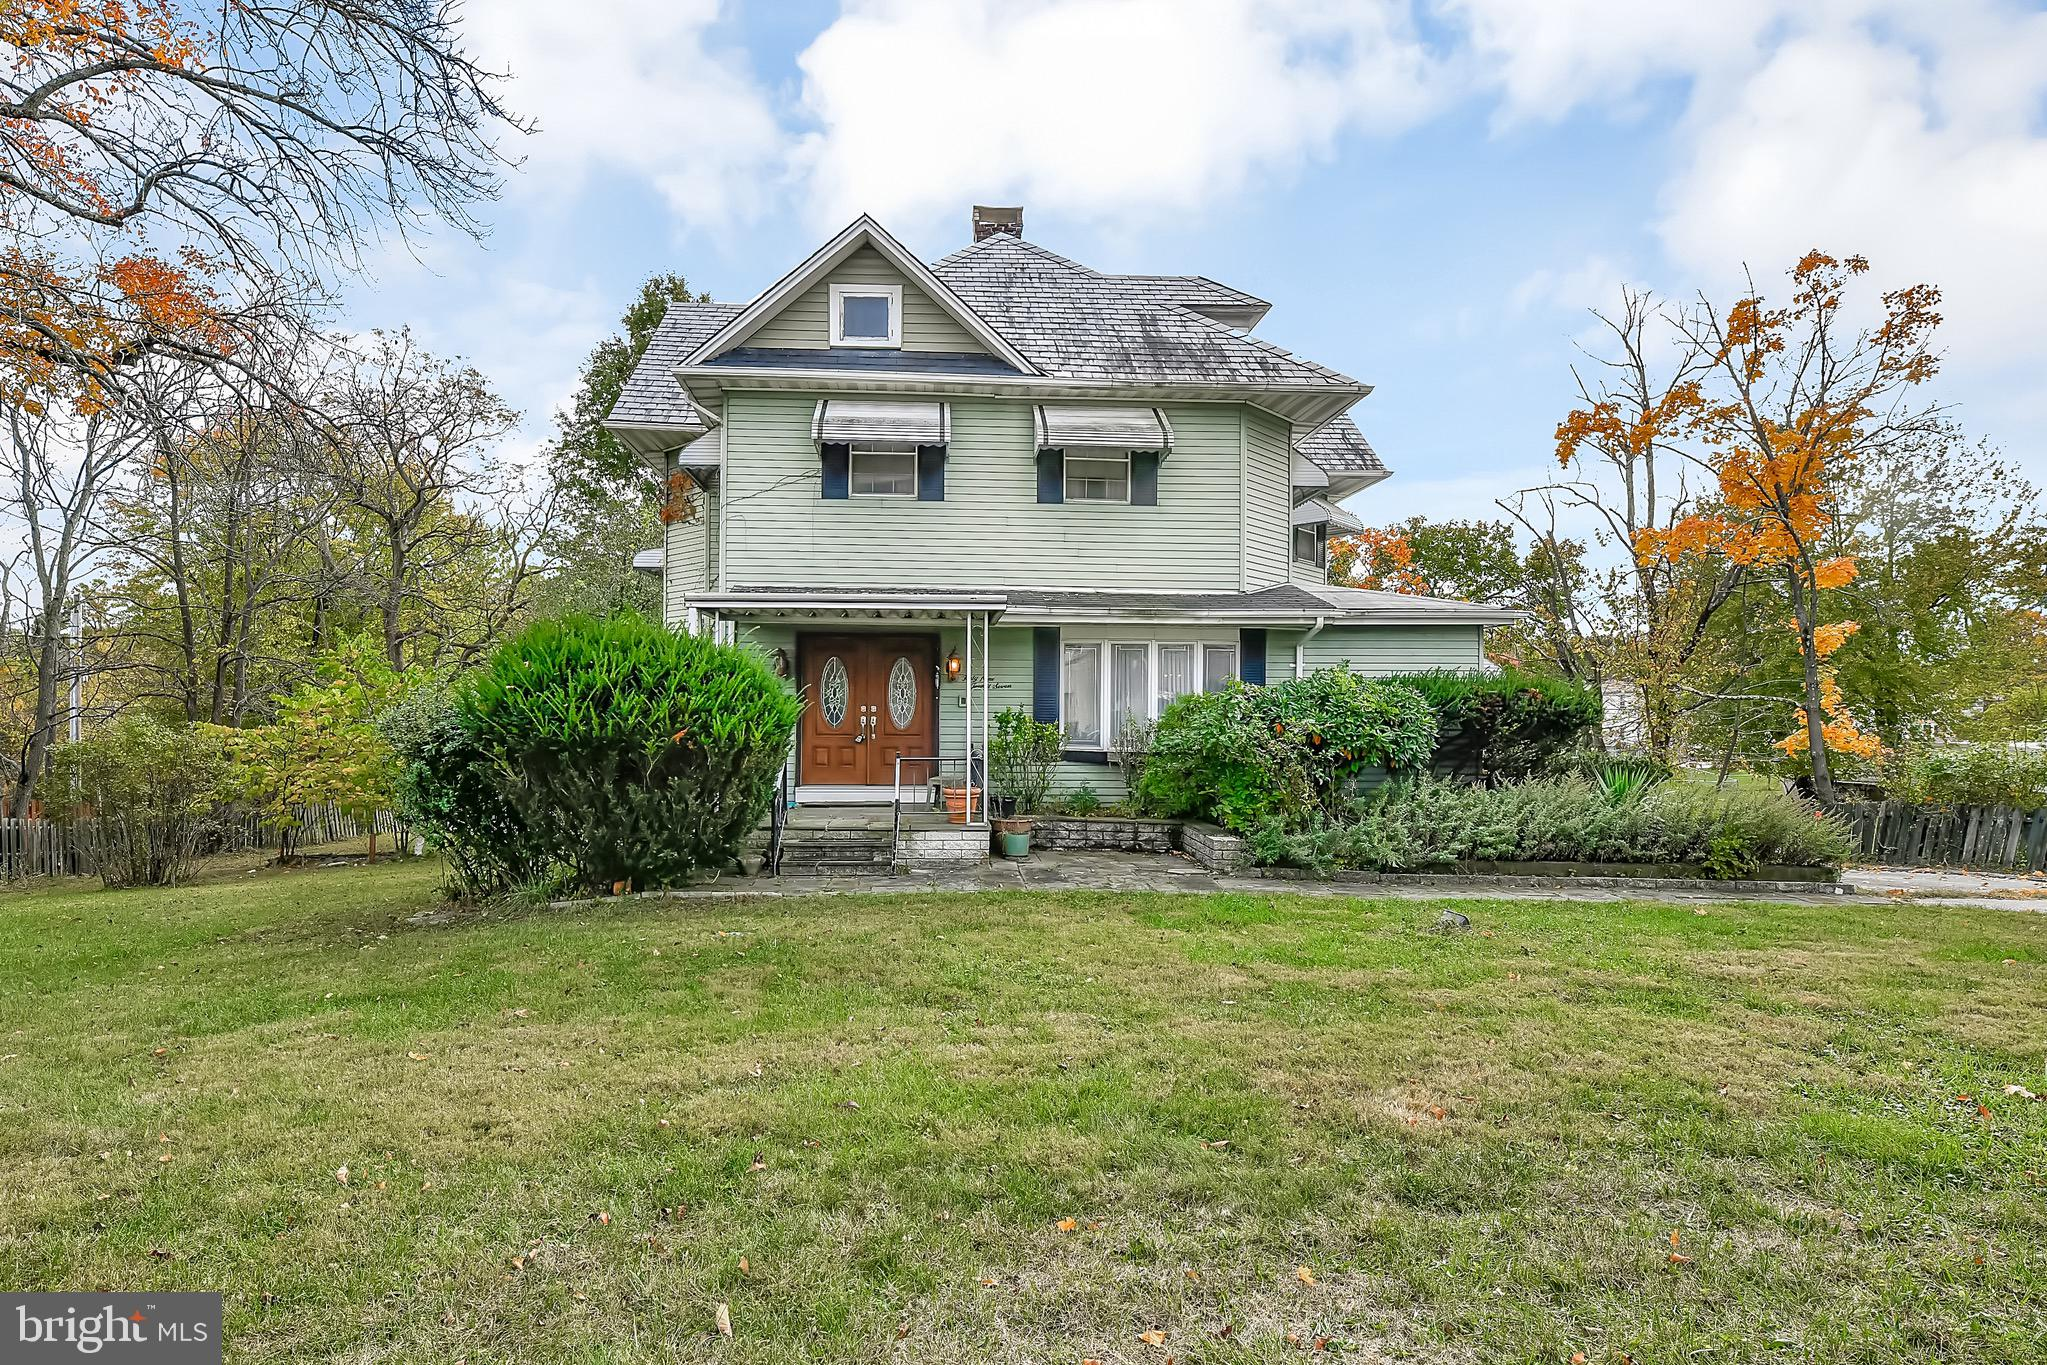 Fantastic investment opportunity. Over 4,000 square feet, four bedrooms, two full baths and endless opportunities for an investor. This home is strictly sold as is and the seller will NOT make any repairs.